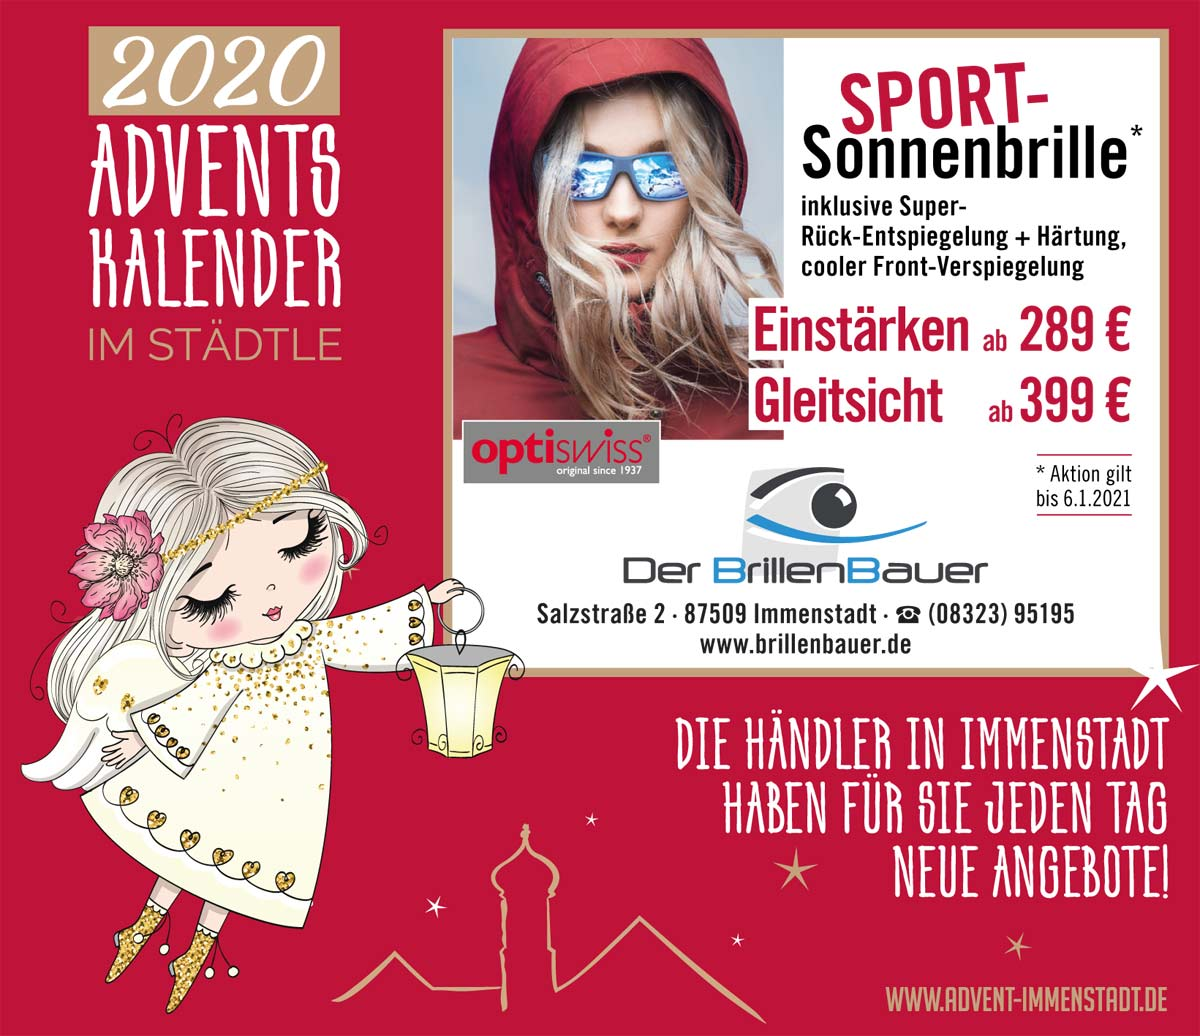 Adventskalender BrillenBauer am 07.12.2020